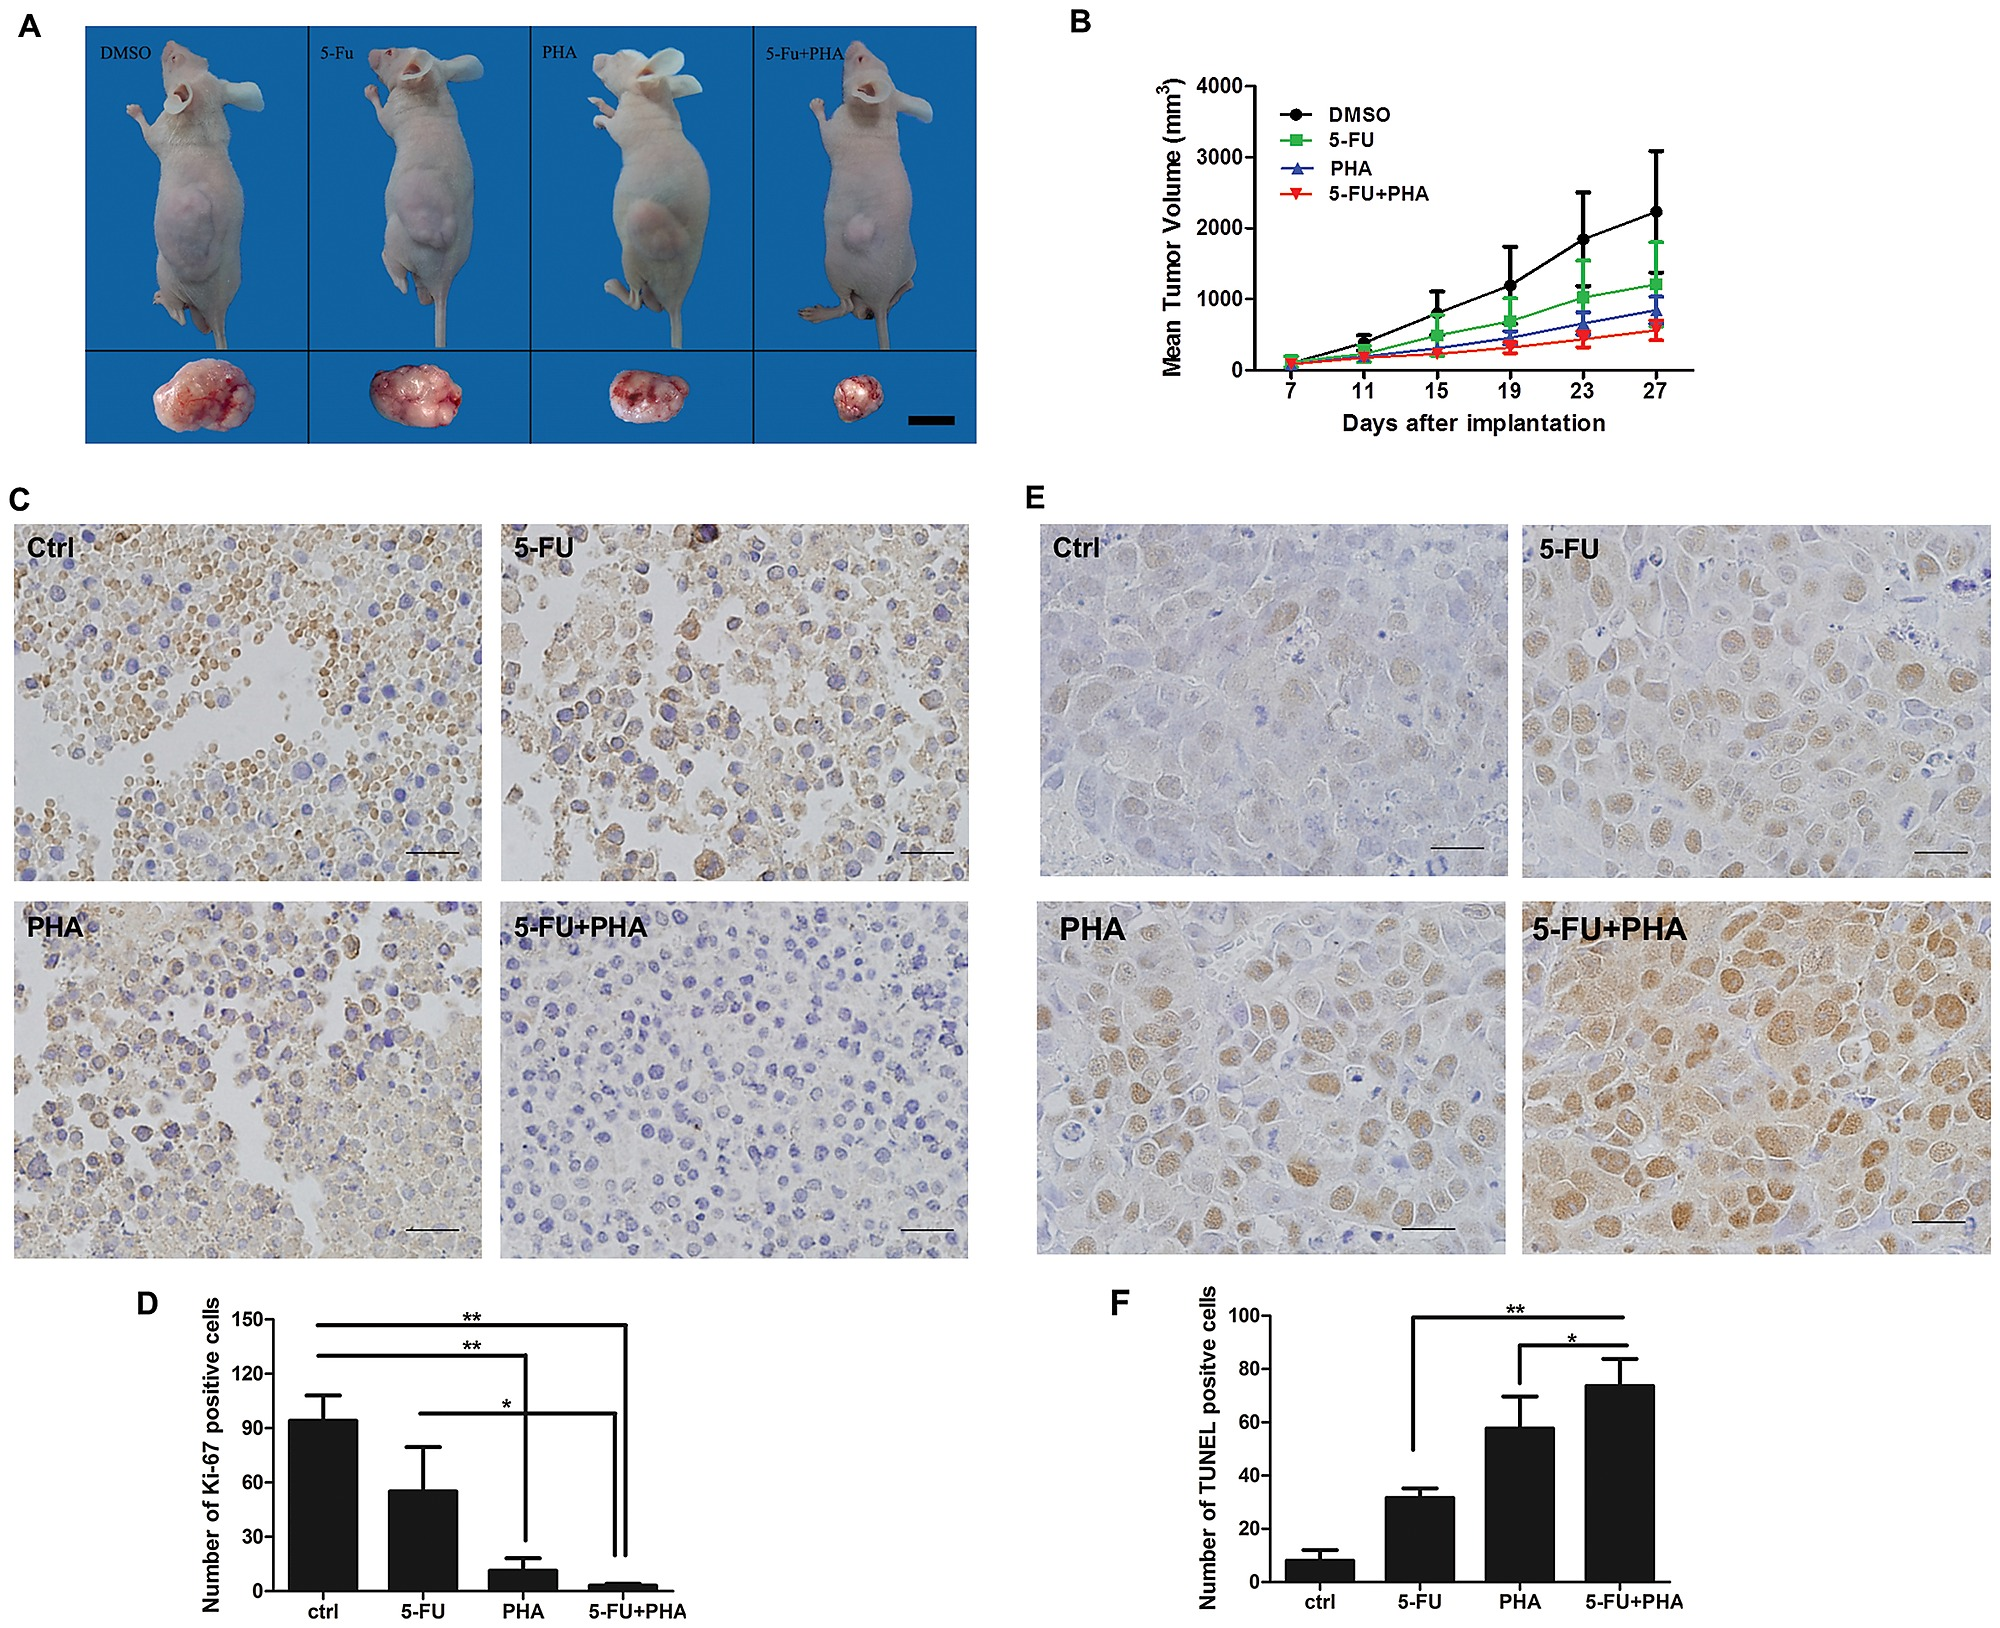 Effects Of C Met Knockdown On The Antitumor Activity Of 5 Fu Chemotherapy In Nude Mice Bearing Human Colon Cancer Sw620 Xenografts